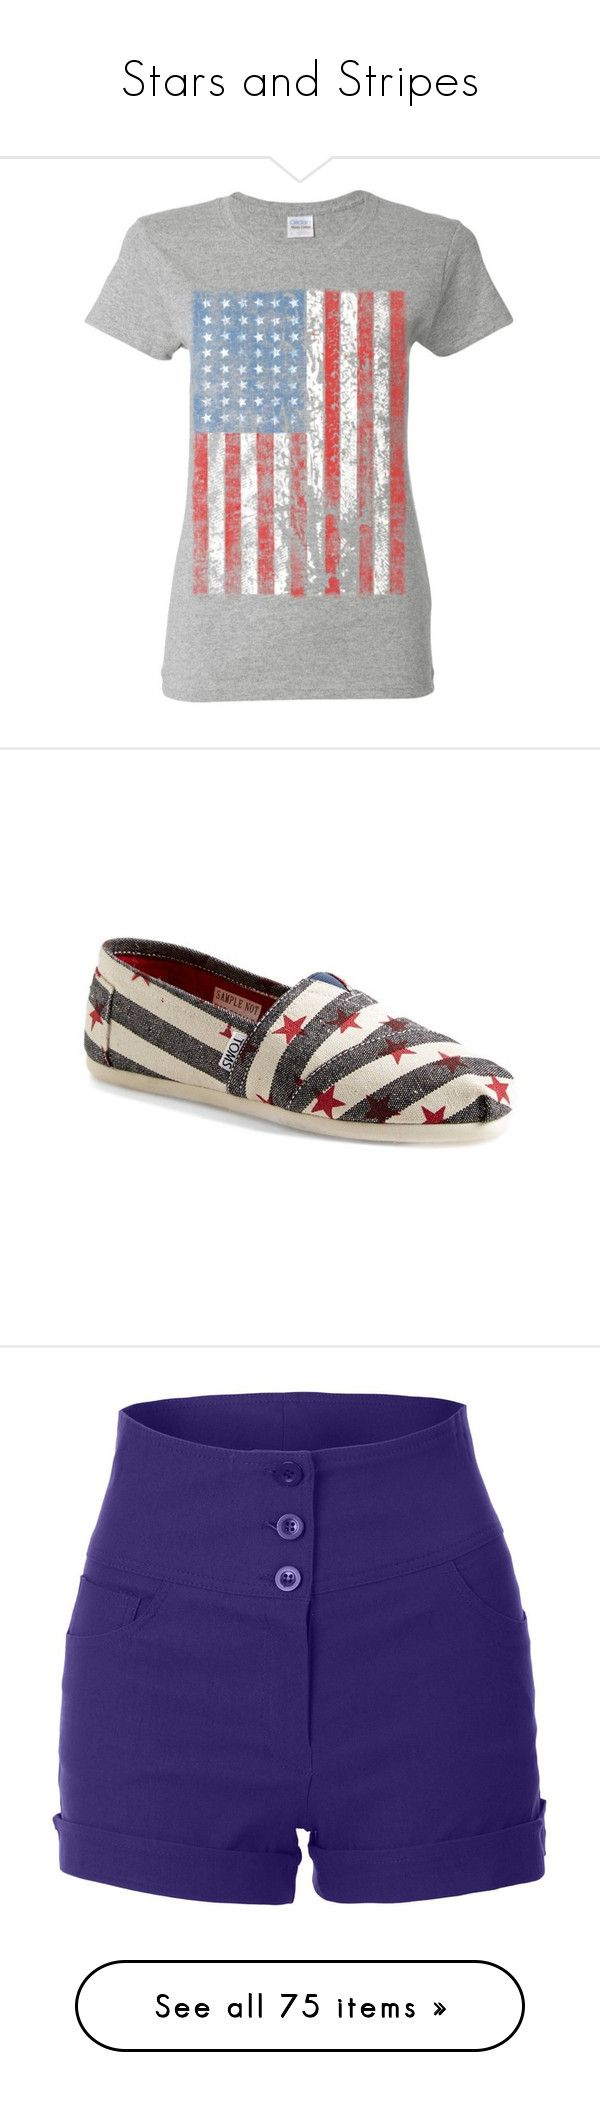 """Stars and Stripes"" by laurijo76 ❤ liked on Polyvore featuring shoes, sneakers, toms, red trainers, toms shoes, star shoes, slip-on sneakers, blue and white striped shoes, shorts and bottoms"